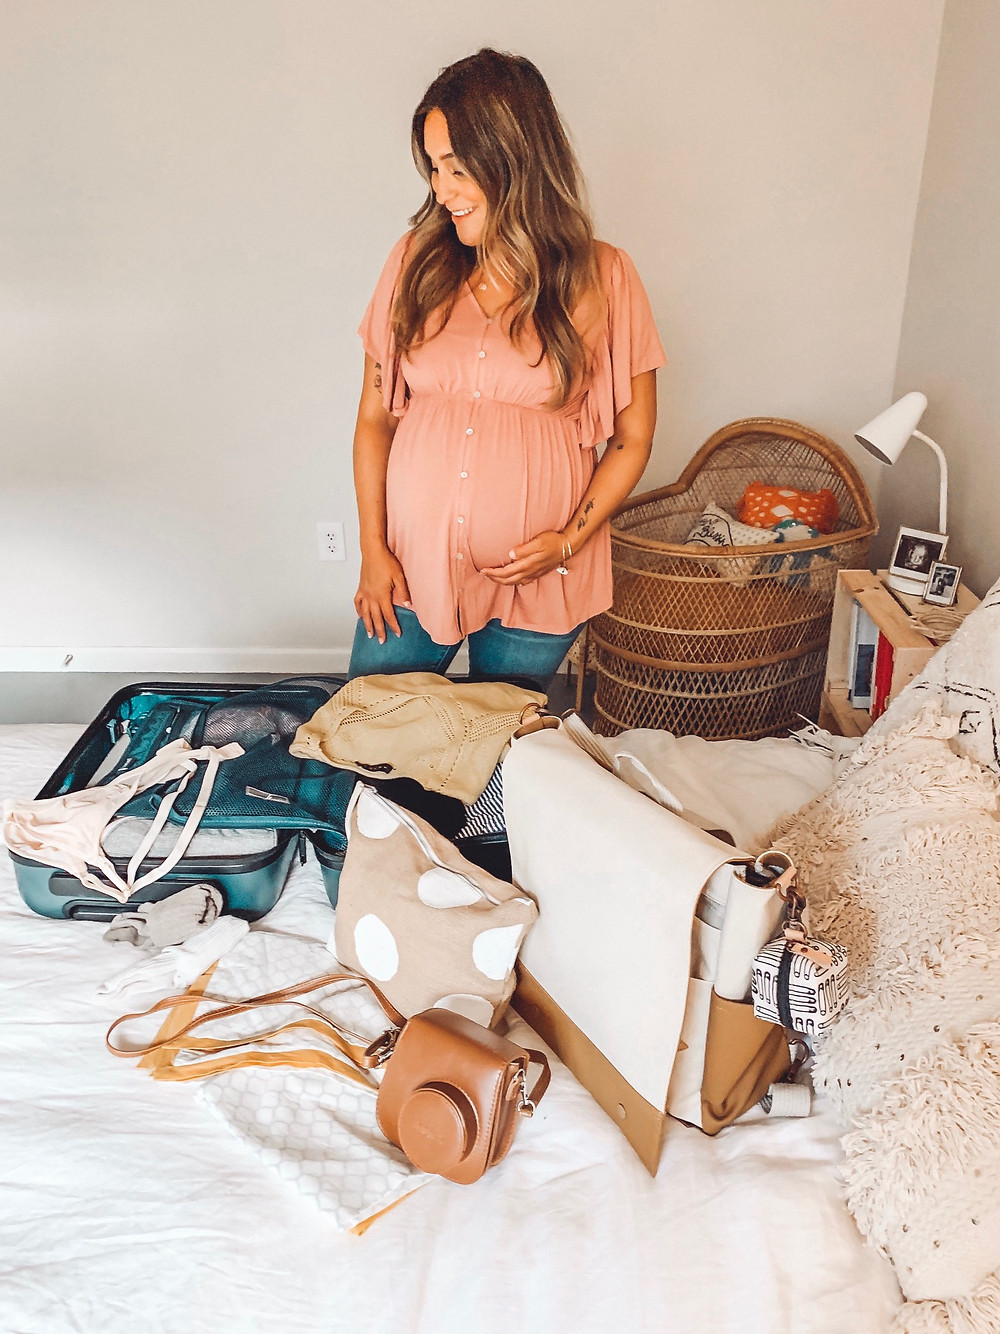 pregnant woman packing a suitcase and other bags on a bed